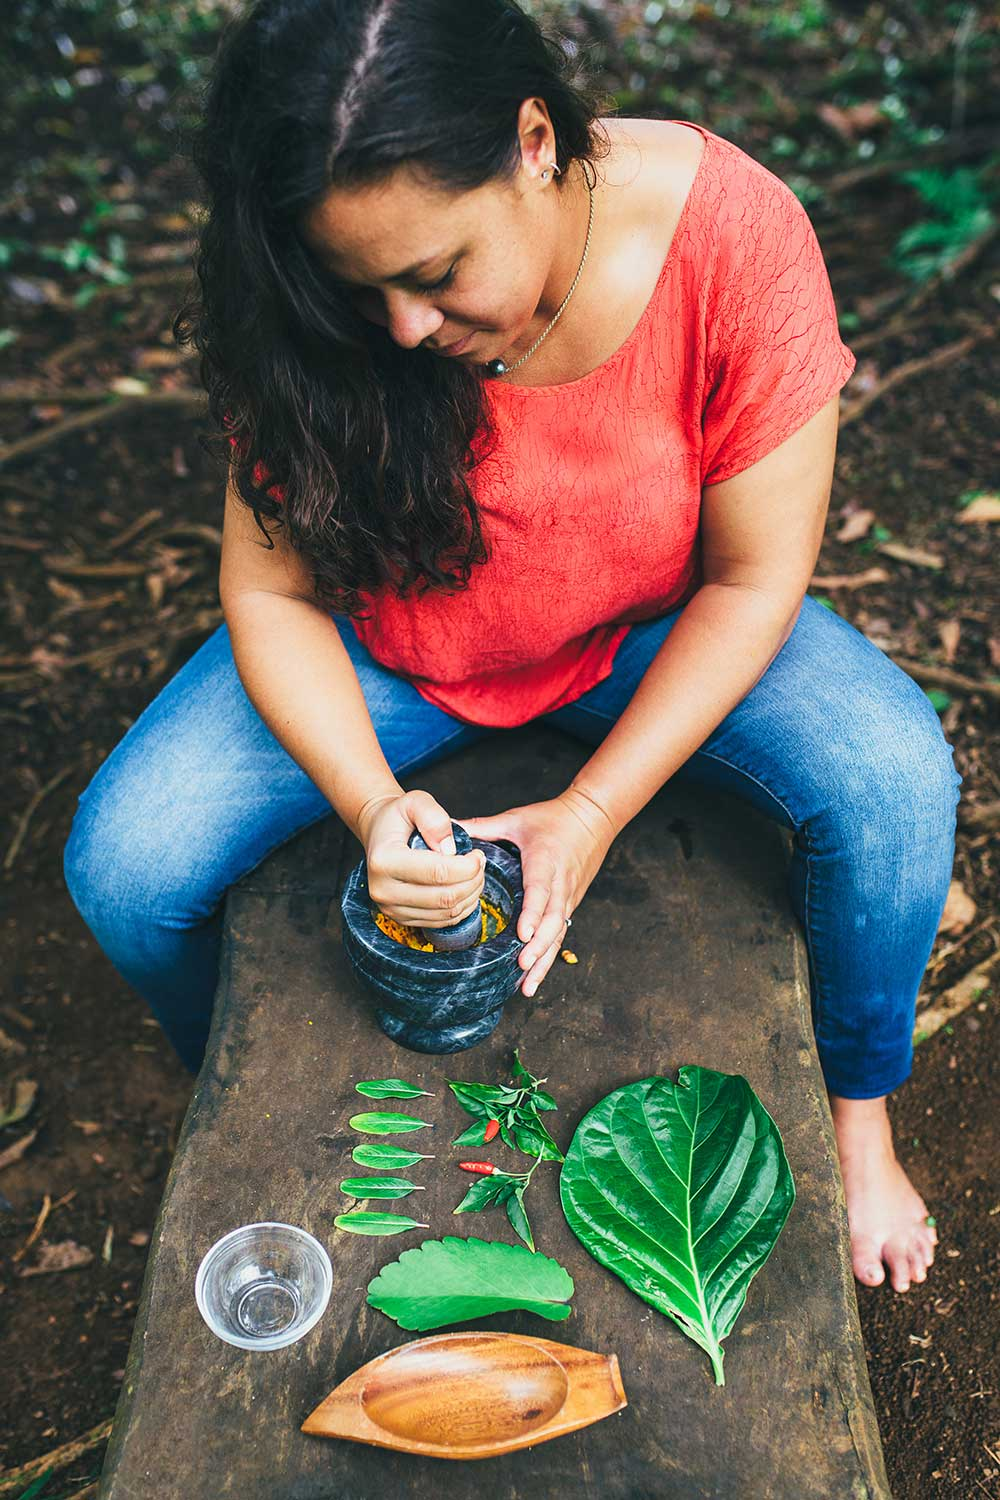 Woman in red shirt and jeans pounding a Hawaiian plant in a stone bowl.